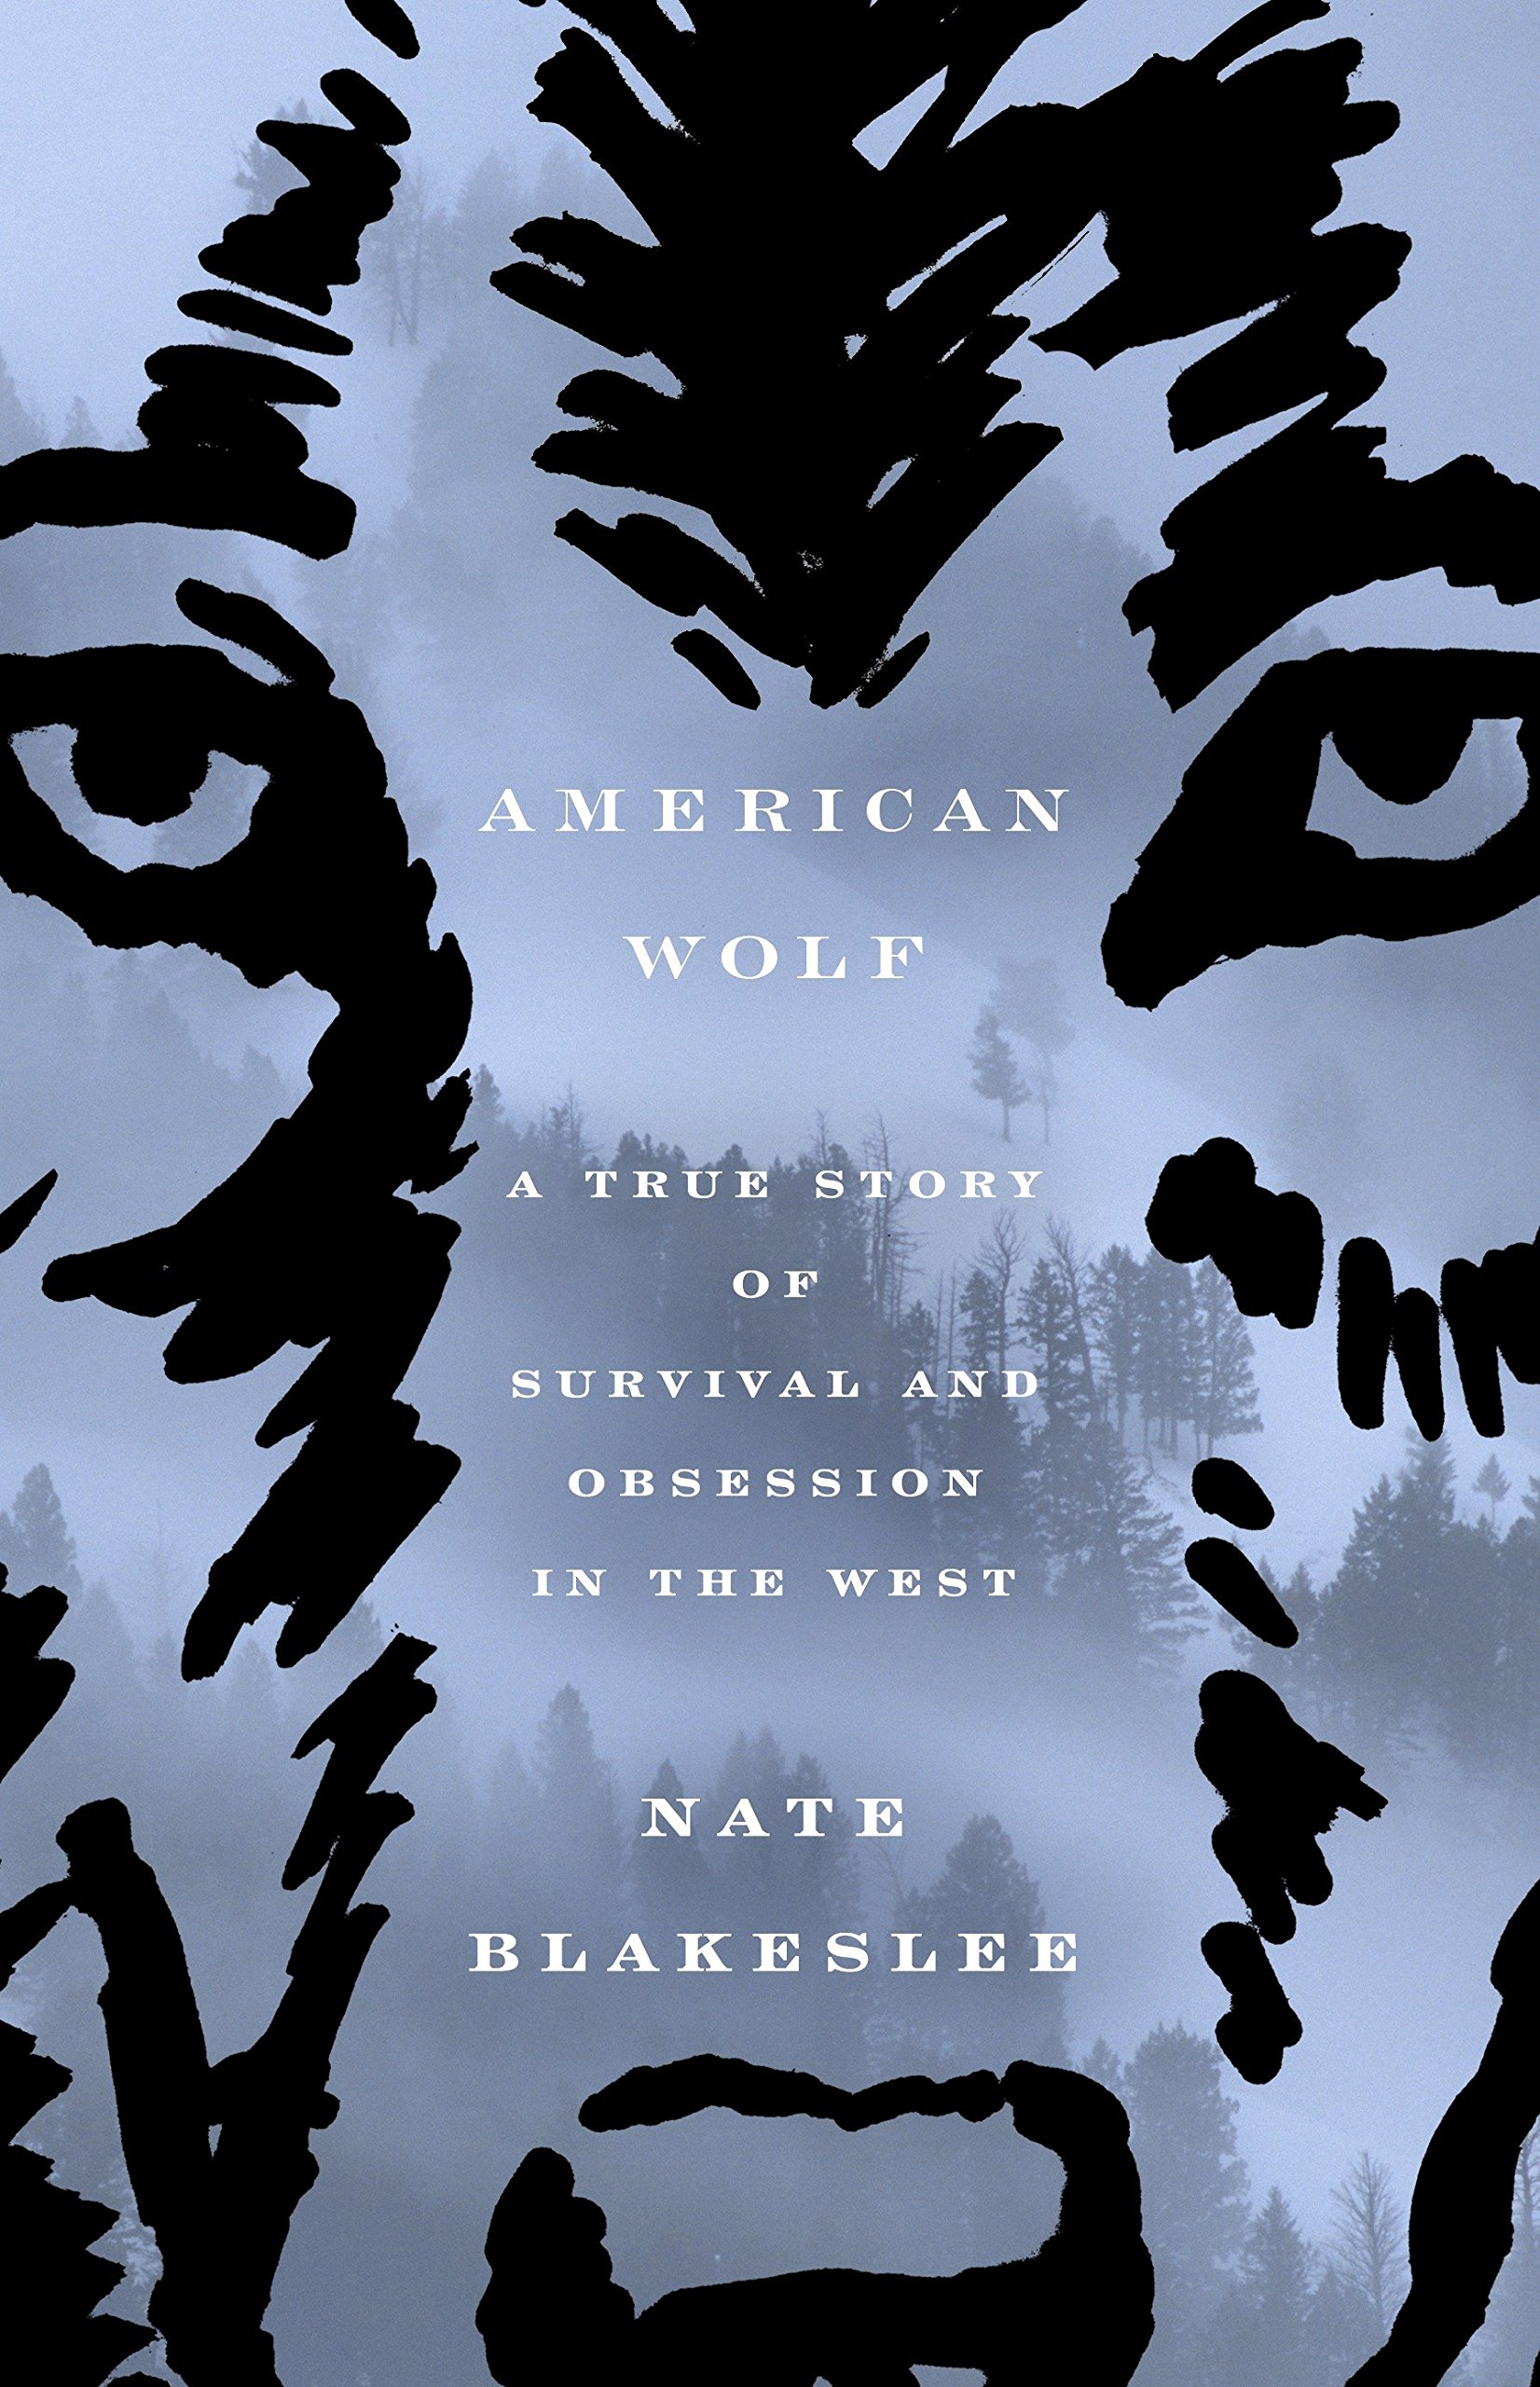 American Wolf: A True Story of Survival and Obsession in the West